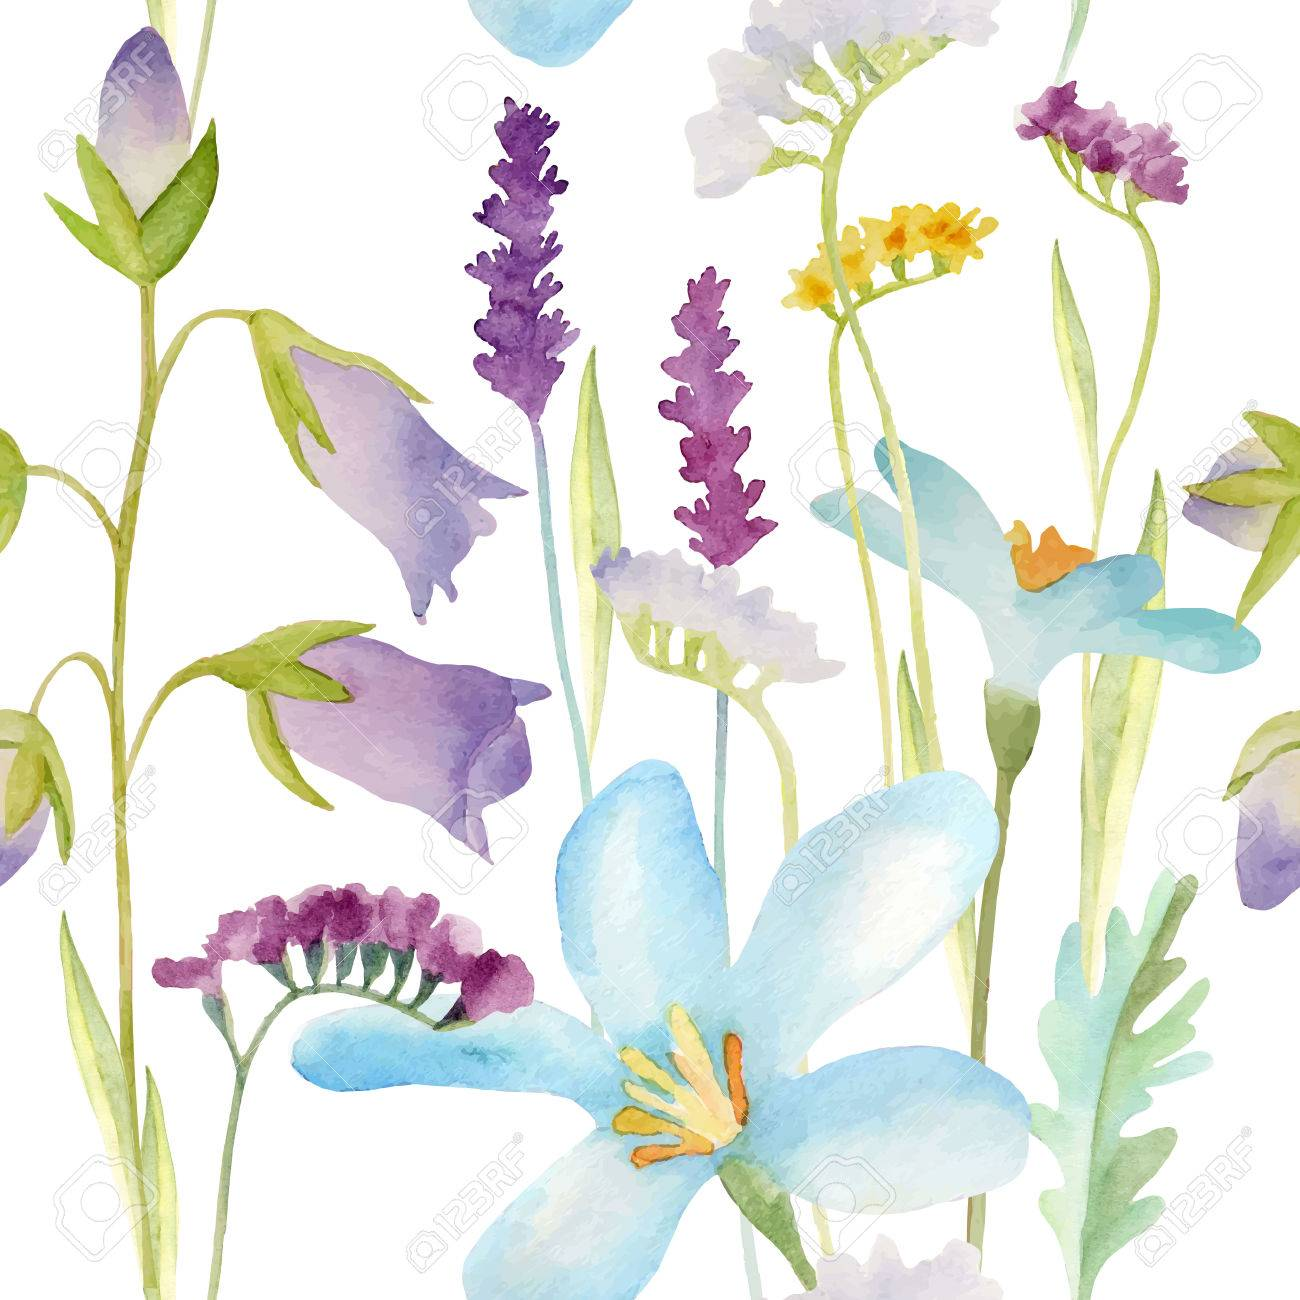 Watercolor flowers seamless pattern.Bright colors watercolor background. - 47899850